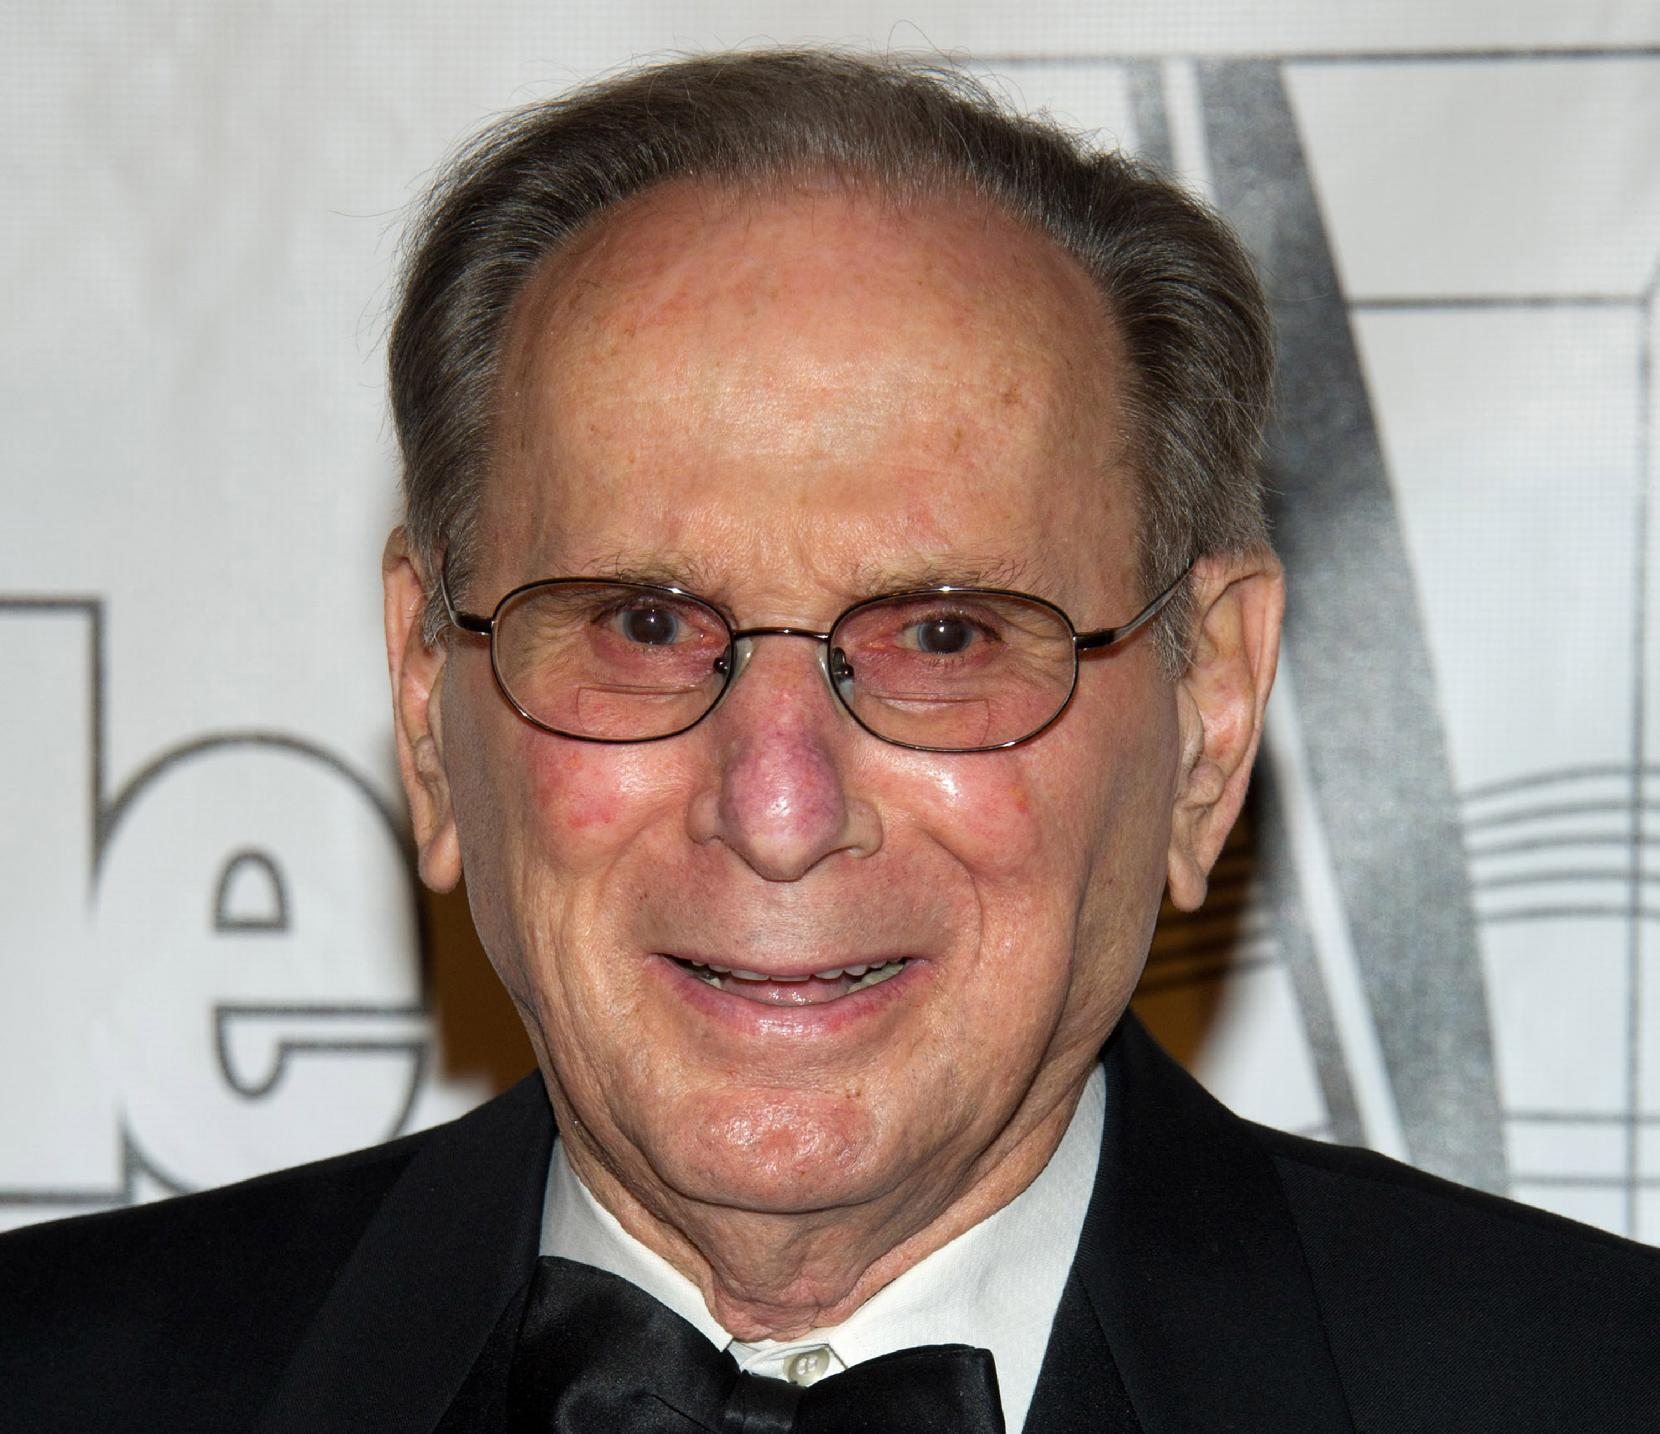 FILE - In this June 16, 2011 file photo, Hal David arrives at the 42nd Annual Songwriters Hall of Fame Awards in New York. David, who along with partner Burt Bacharach penned dozens of top 40 hits for a variety of recording artists in the 1960s and beyond, died Saturday Sept. 1, 2012 in Los Angeles. (AP Photo/Charles Sykes, File)